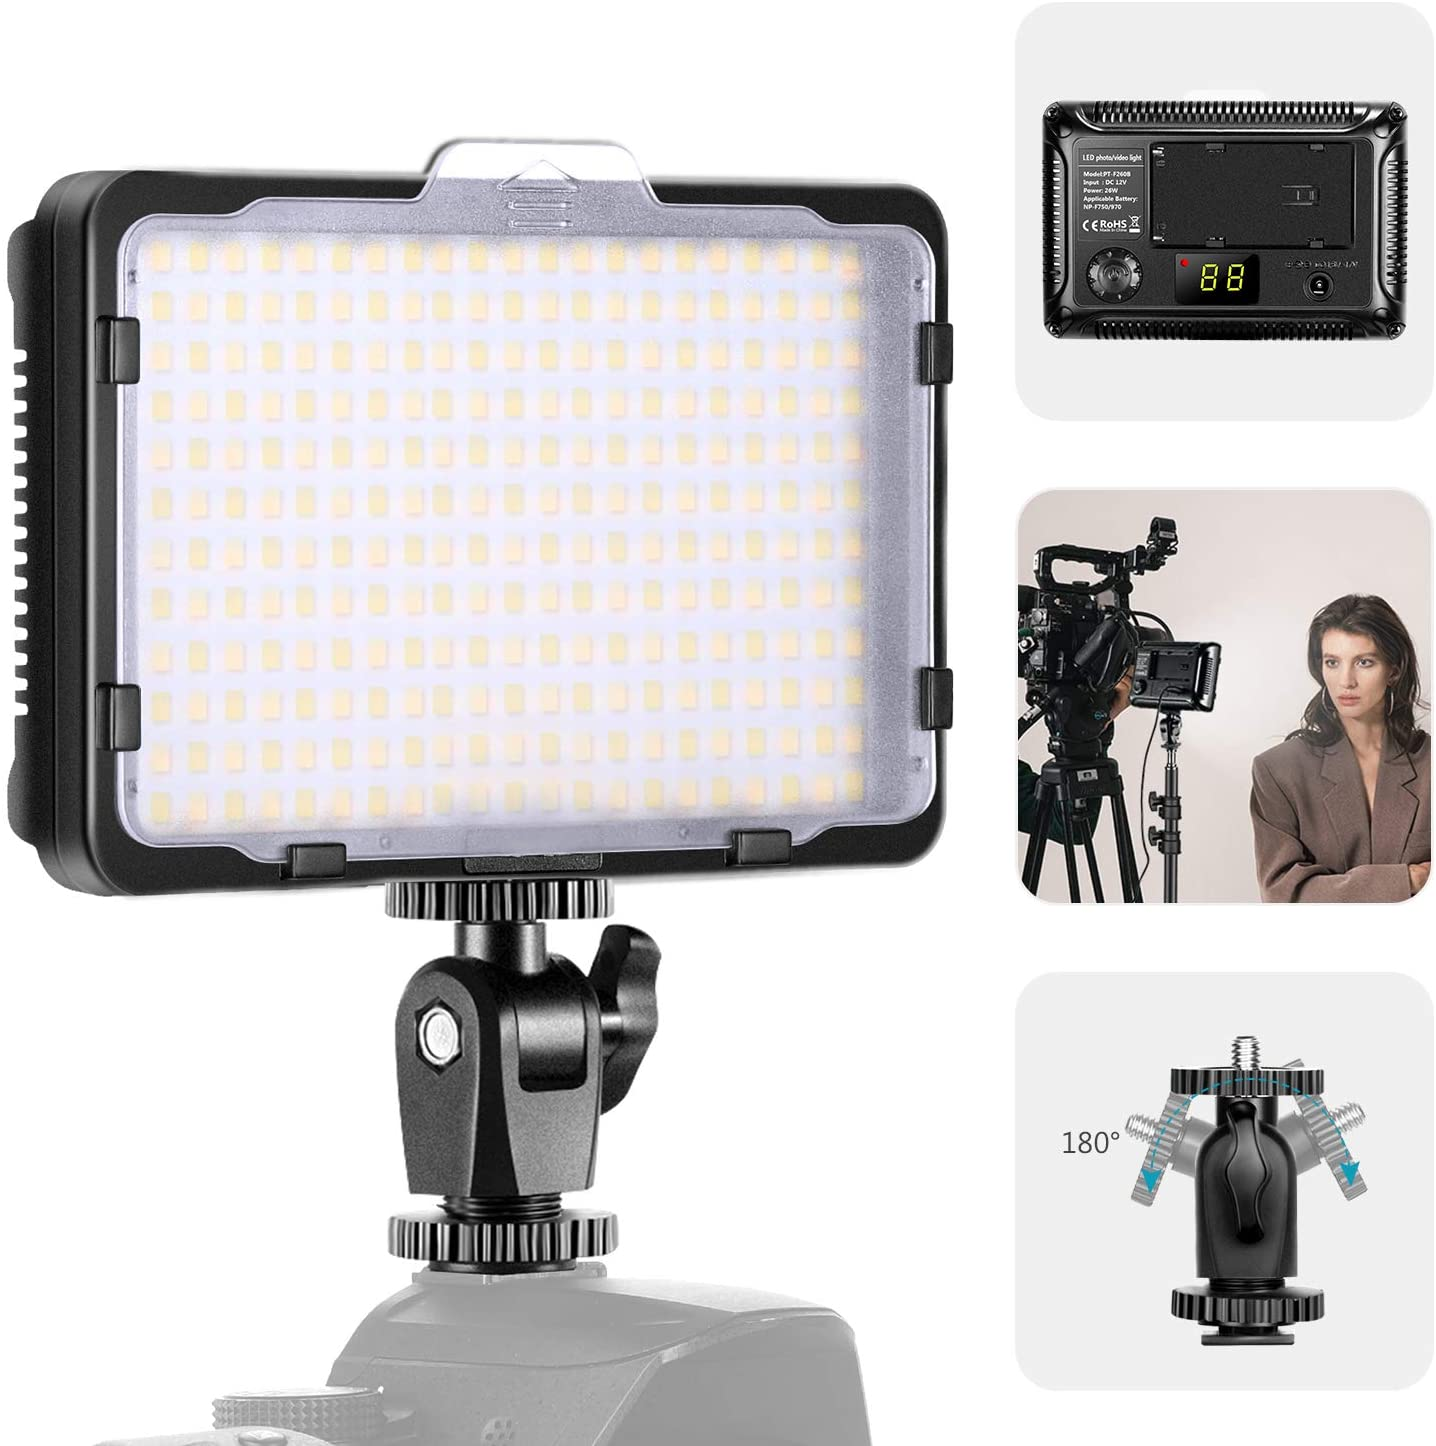 Neewer Upgraded 176S Version, 264 LED Video Light with SMD LED Beads, LED Light Panel Dimmable for DSLR Camera Camcorder, 3200K-5600K Bi-Color, White Filter and LCD Display (Battery Not Included)